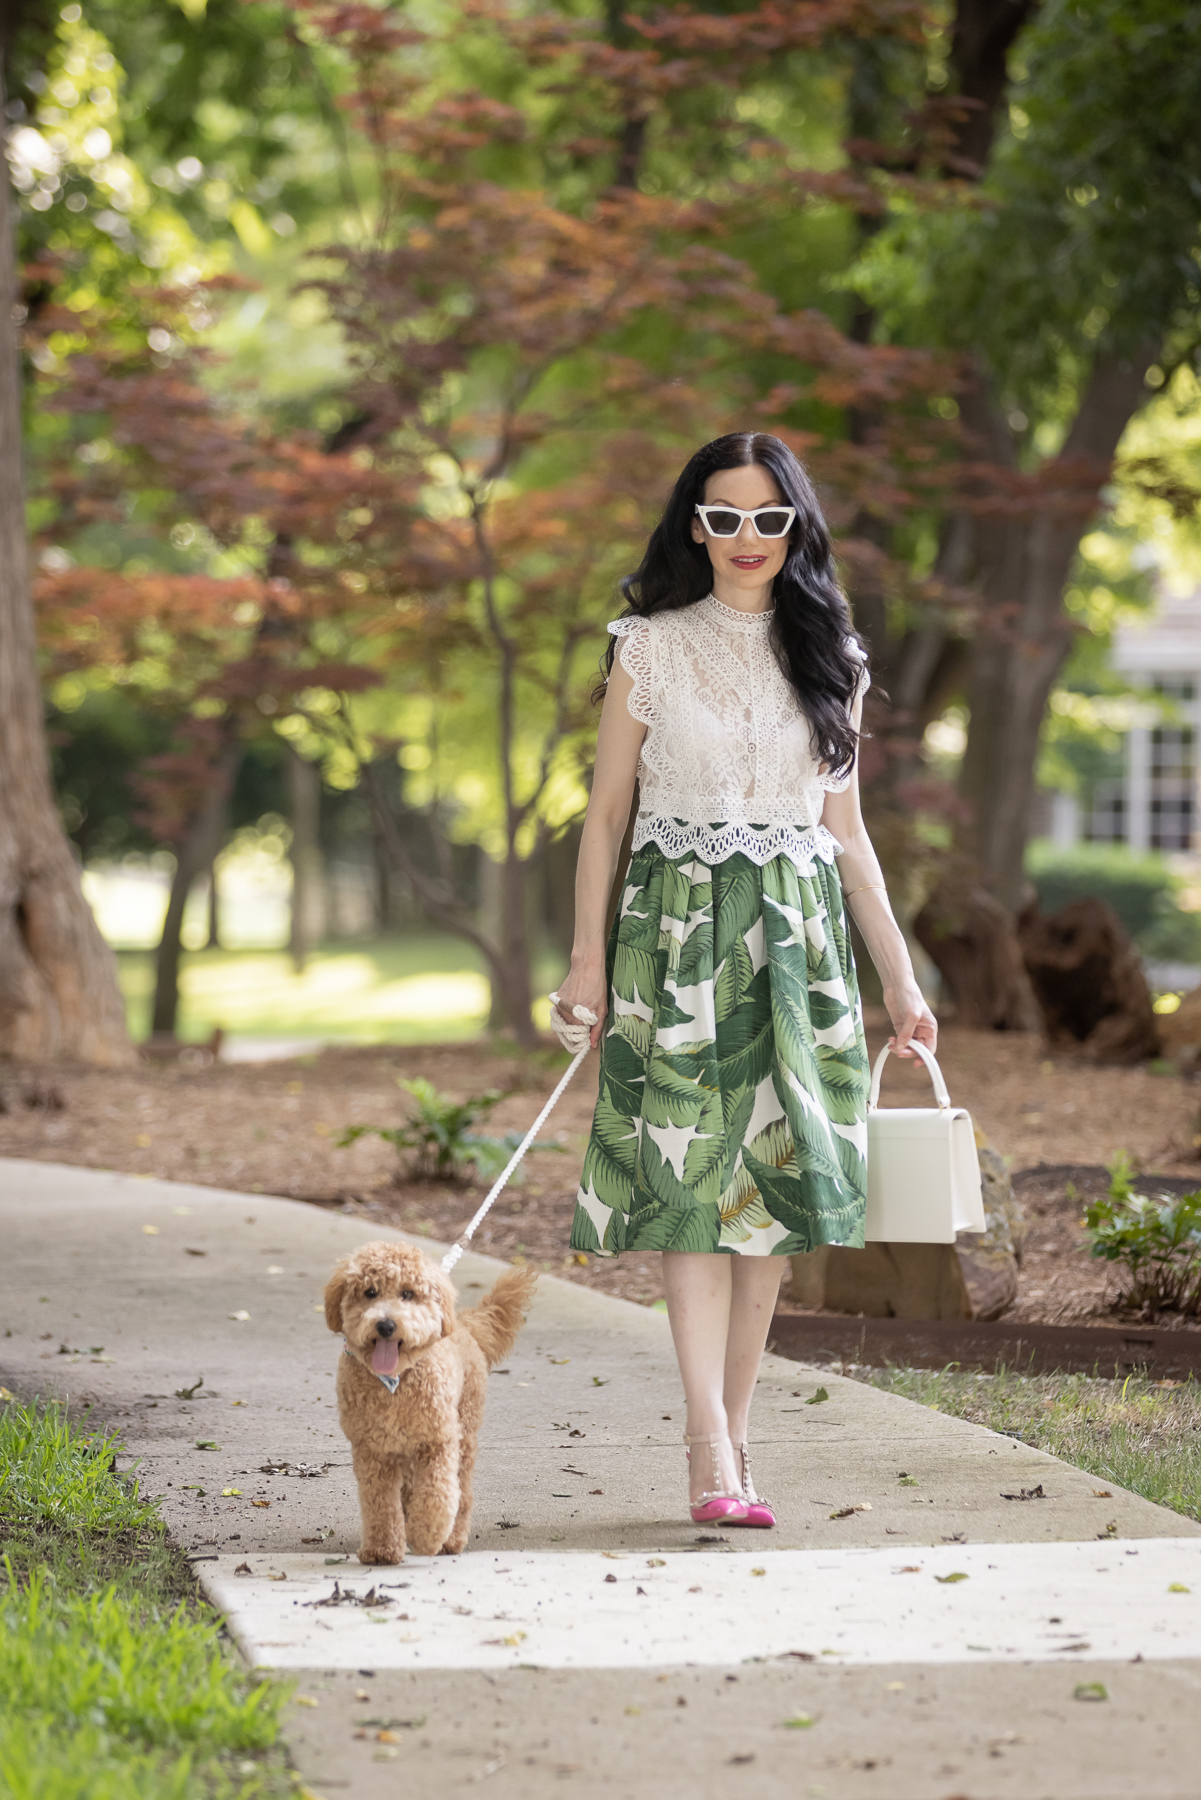 Palm Print Skirt, Neely & Chloe Bag, White Lace Top, Pink Pumps, Fashion Blogger, Fall Transitional Style, Mini Goldendoodle puppy, Fashion Blogger,   Palm Print Skirt by popular Dallas fashion blog, Pretty Little Shoppers: image of a woman walking her dog outside and wearing a palm print skirt, lace cropped top, and pink heels.